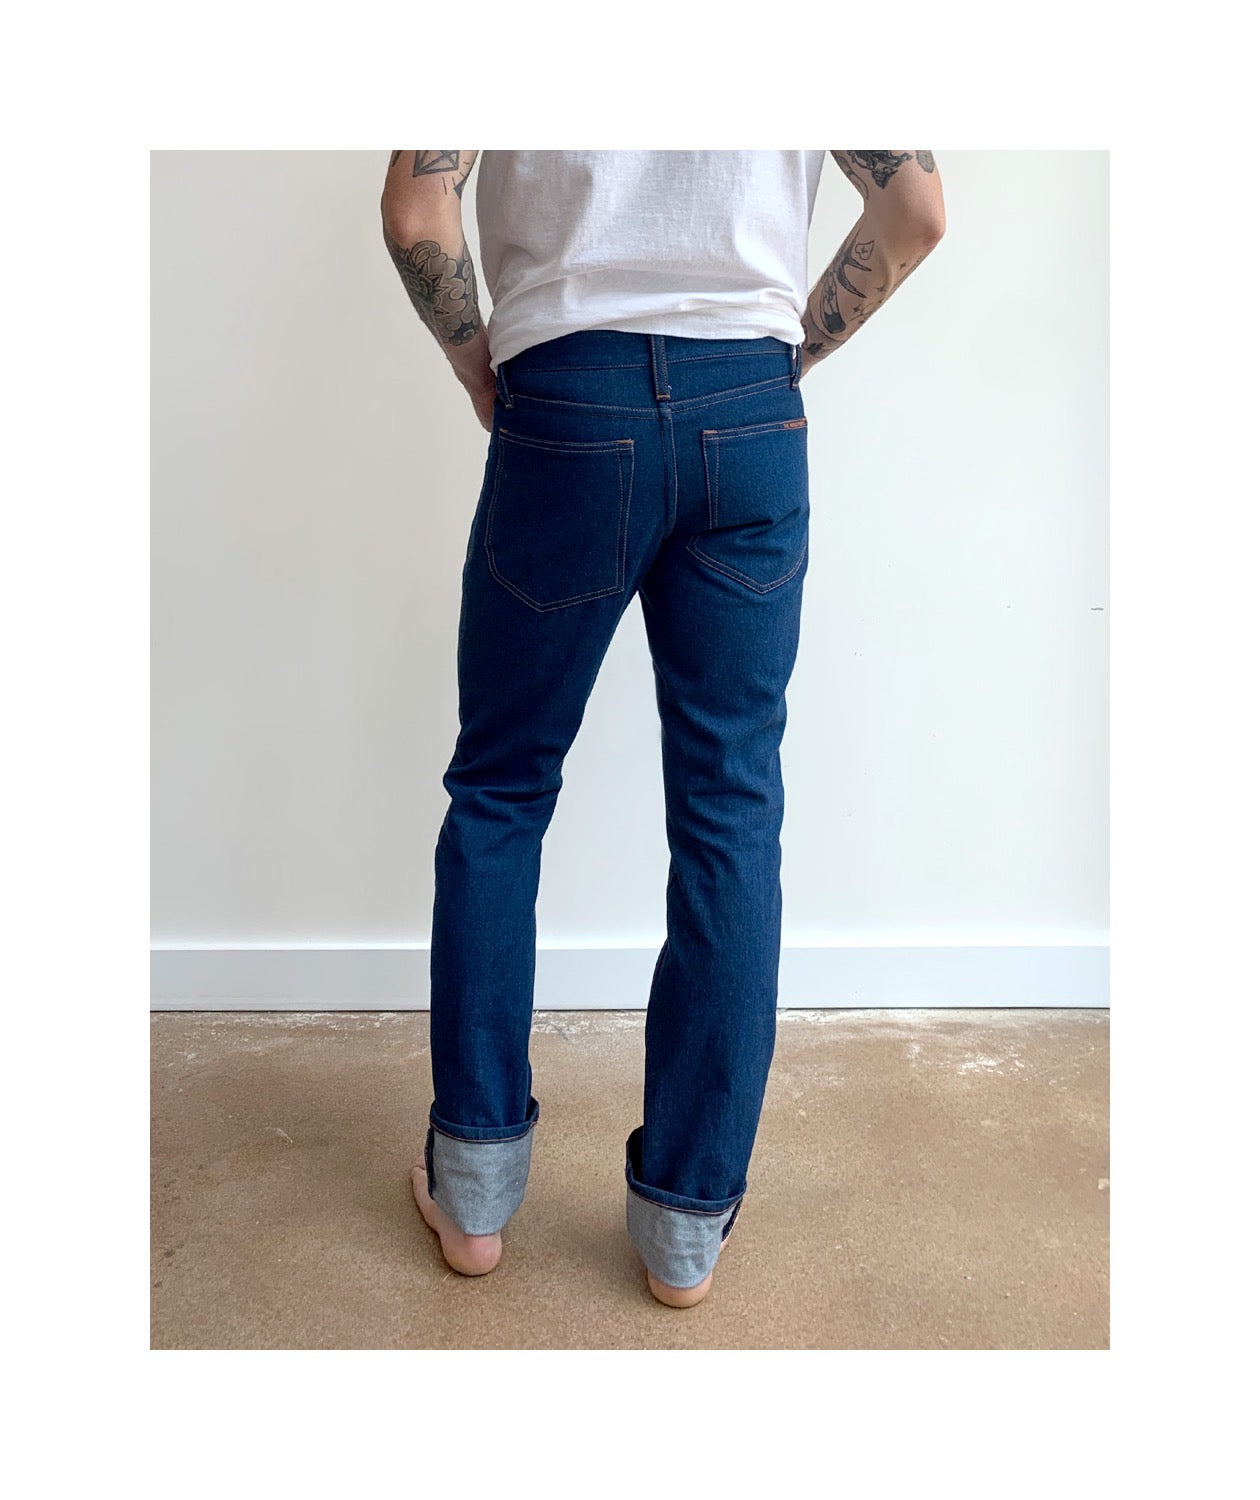 Waist down photo of model wearing mens REVEREND style jeans, not facing the camera to show back of jeans.